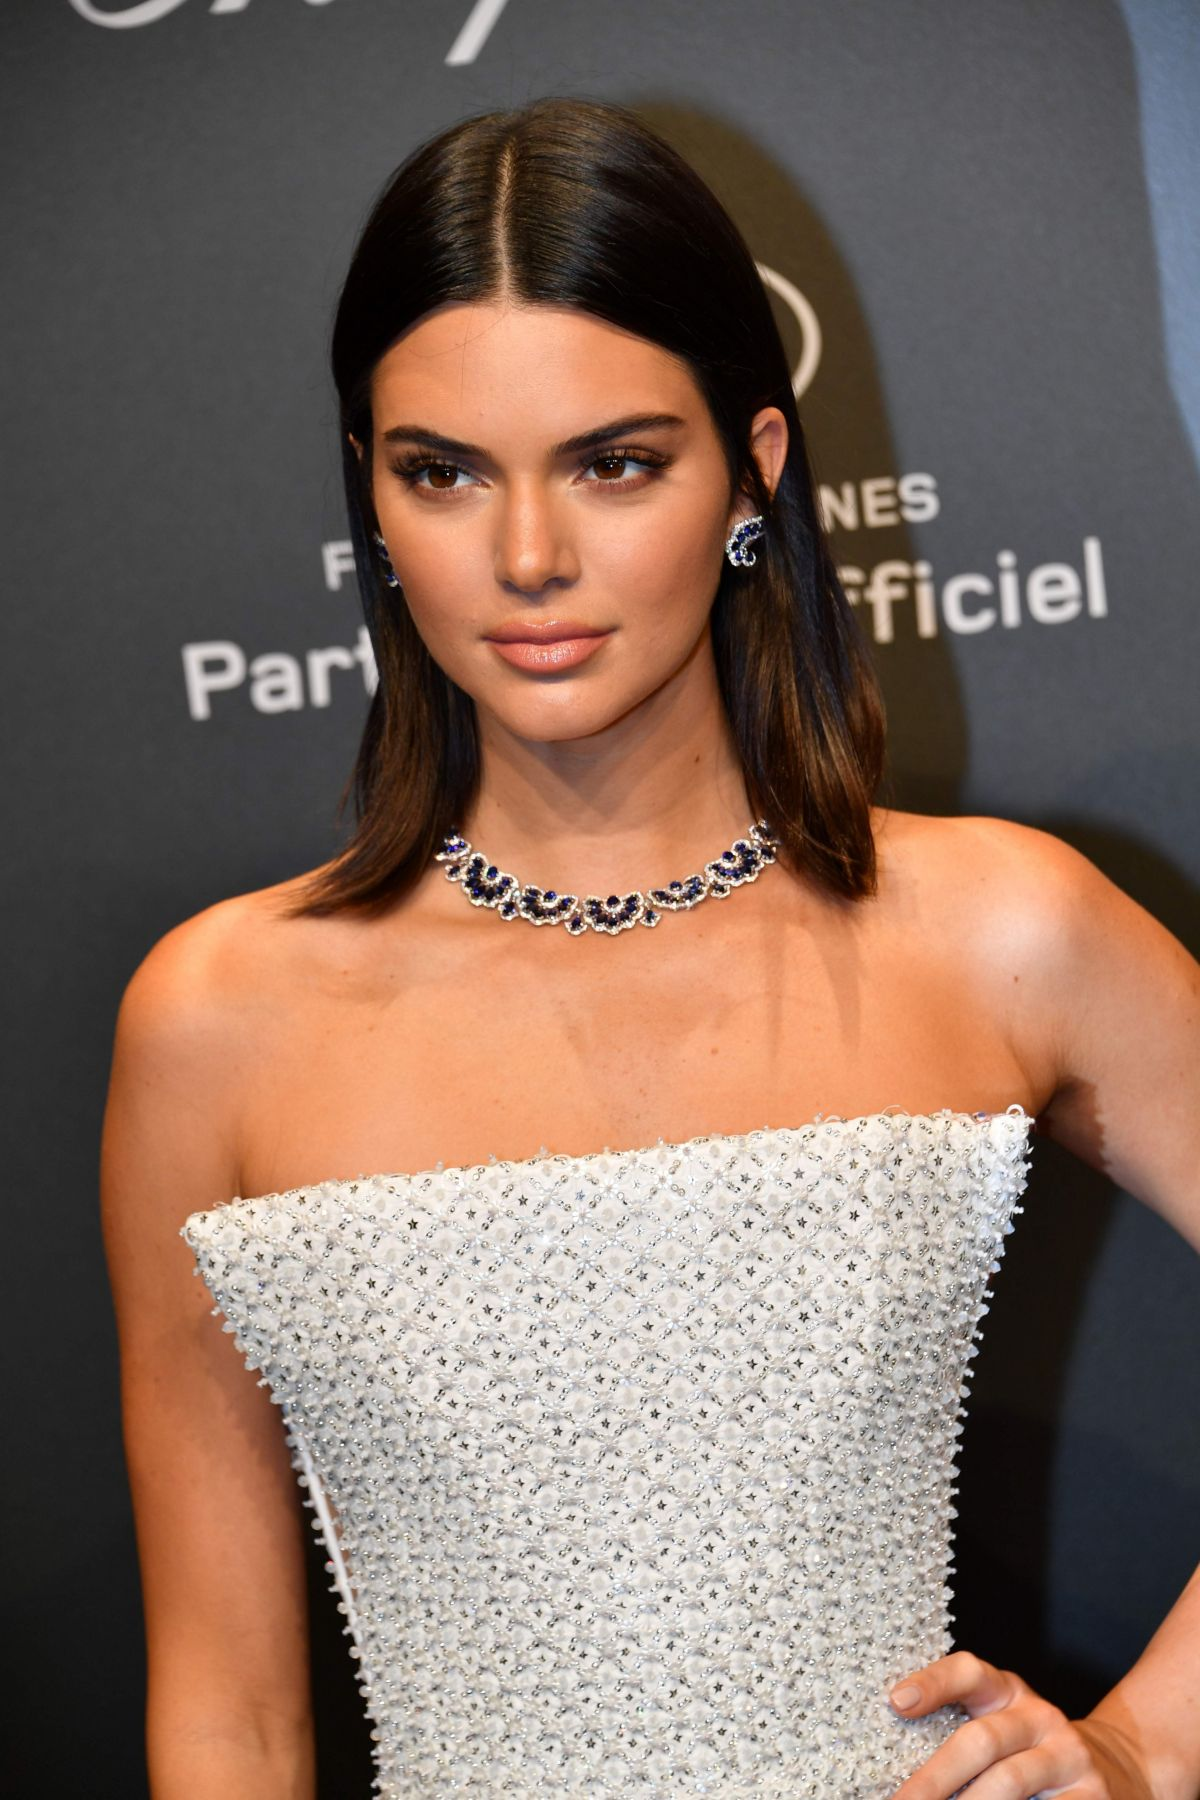 Kendall Jenner nudes (85 pictures), young Porno, Twitter, in bikini 2016